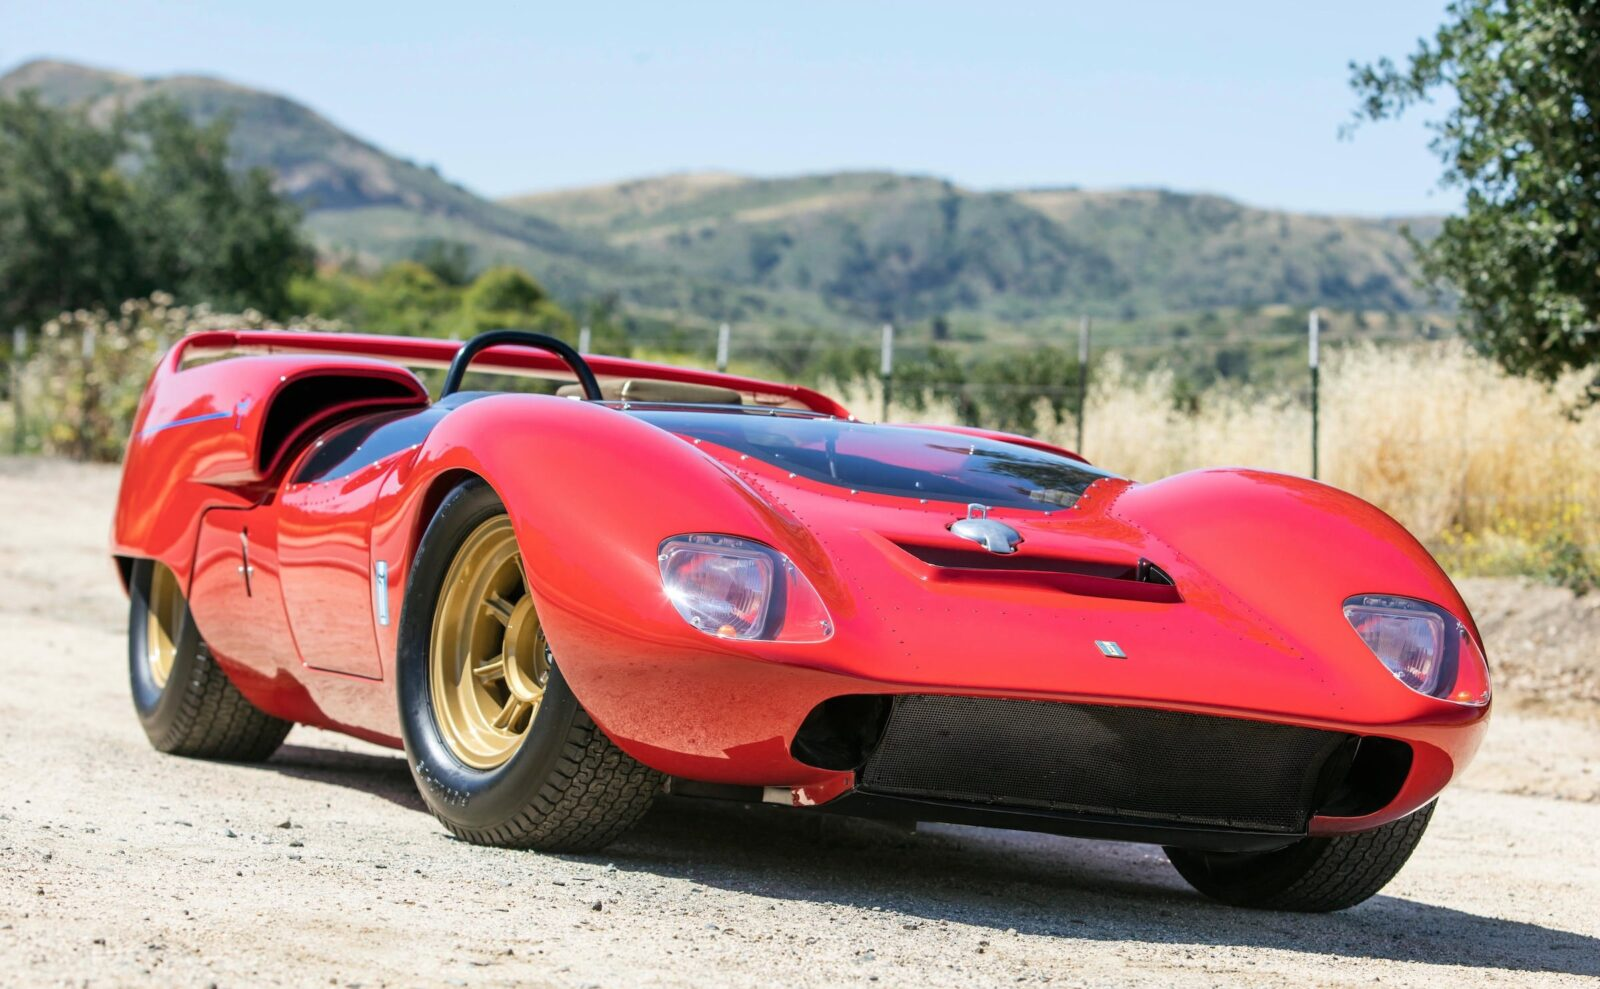 The Shelby De Tomaso P70 - The Only One Ever Made